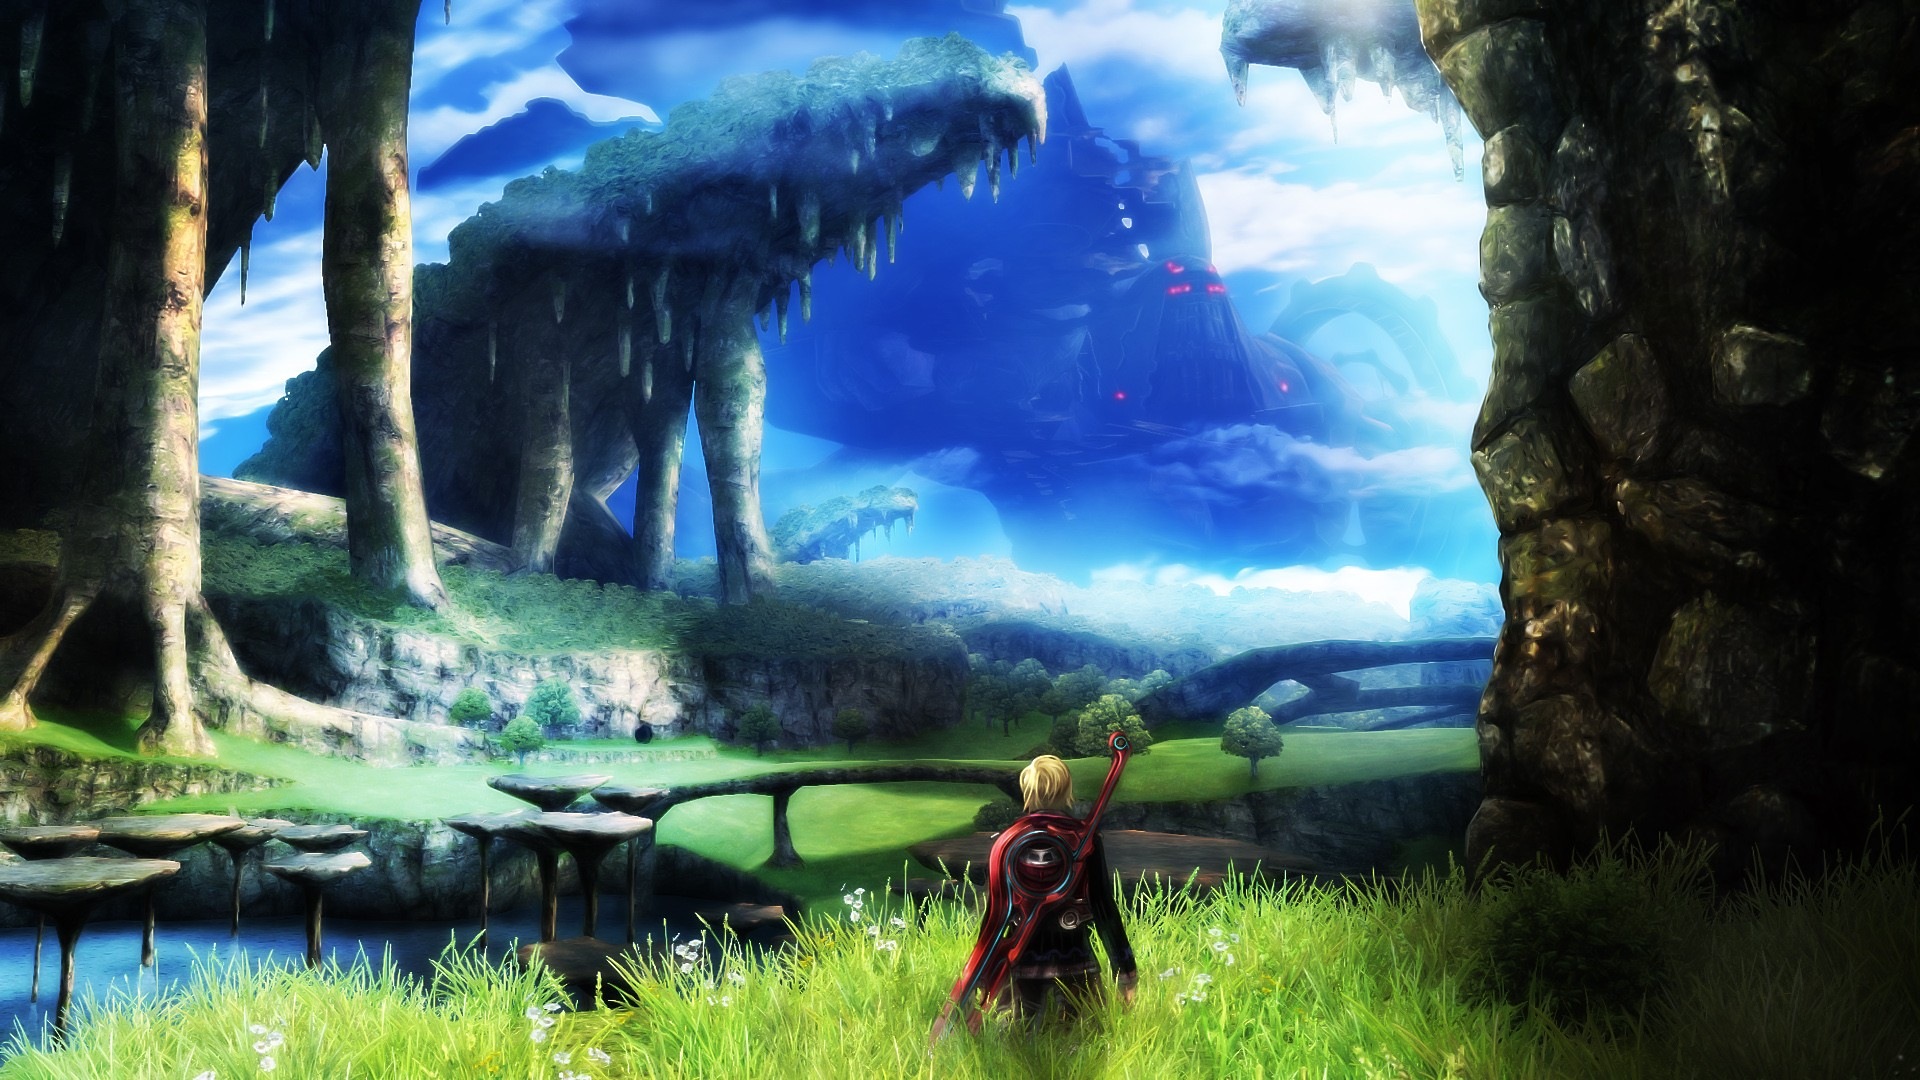 Id 860734 Wallpaper Abyss: 22 Xenoblade Chronicles Fondos De Pantalla HD